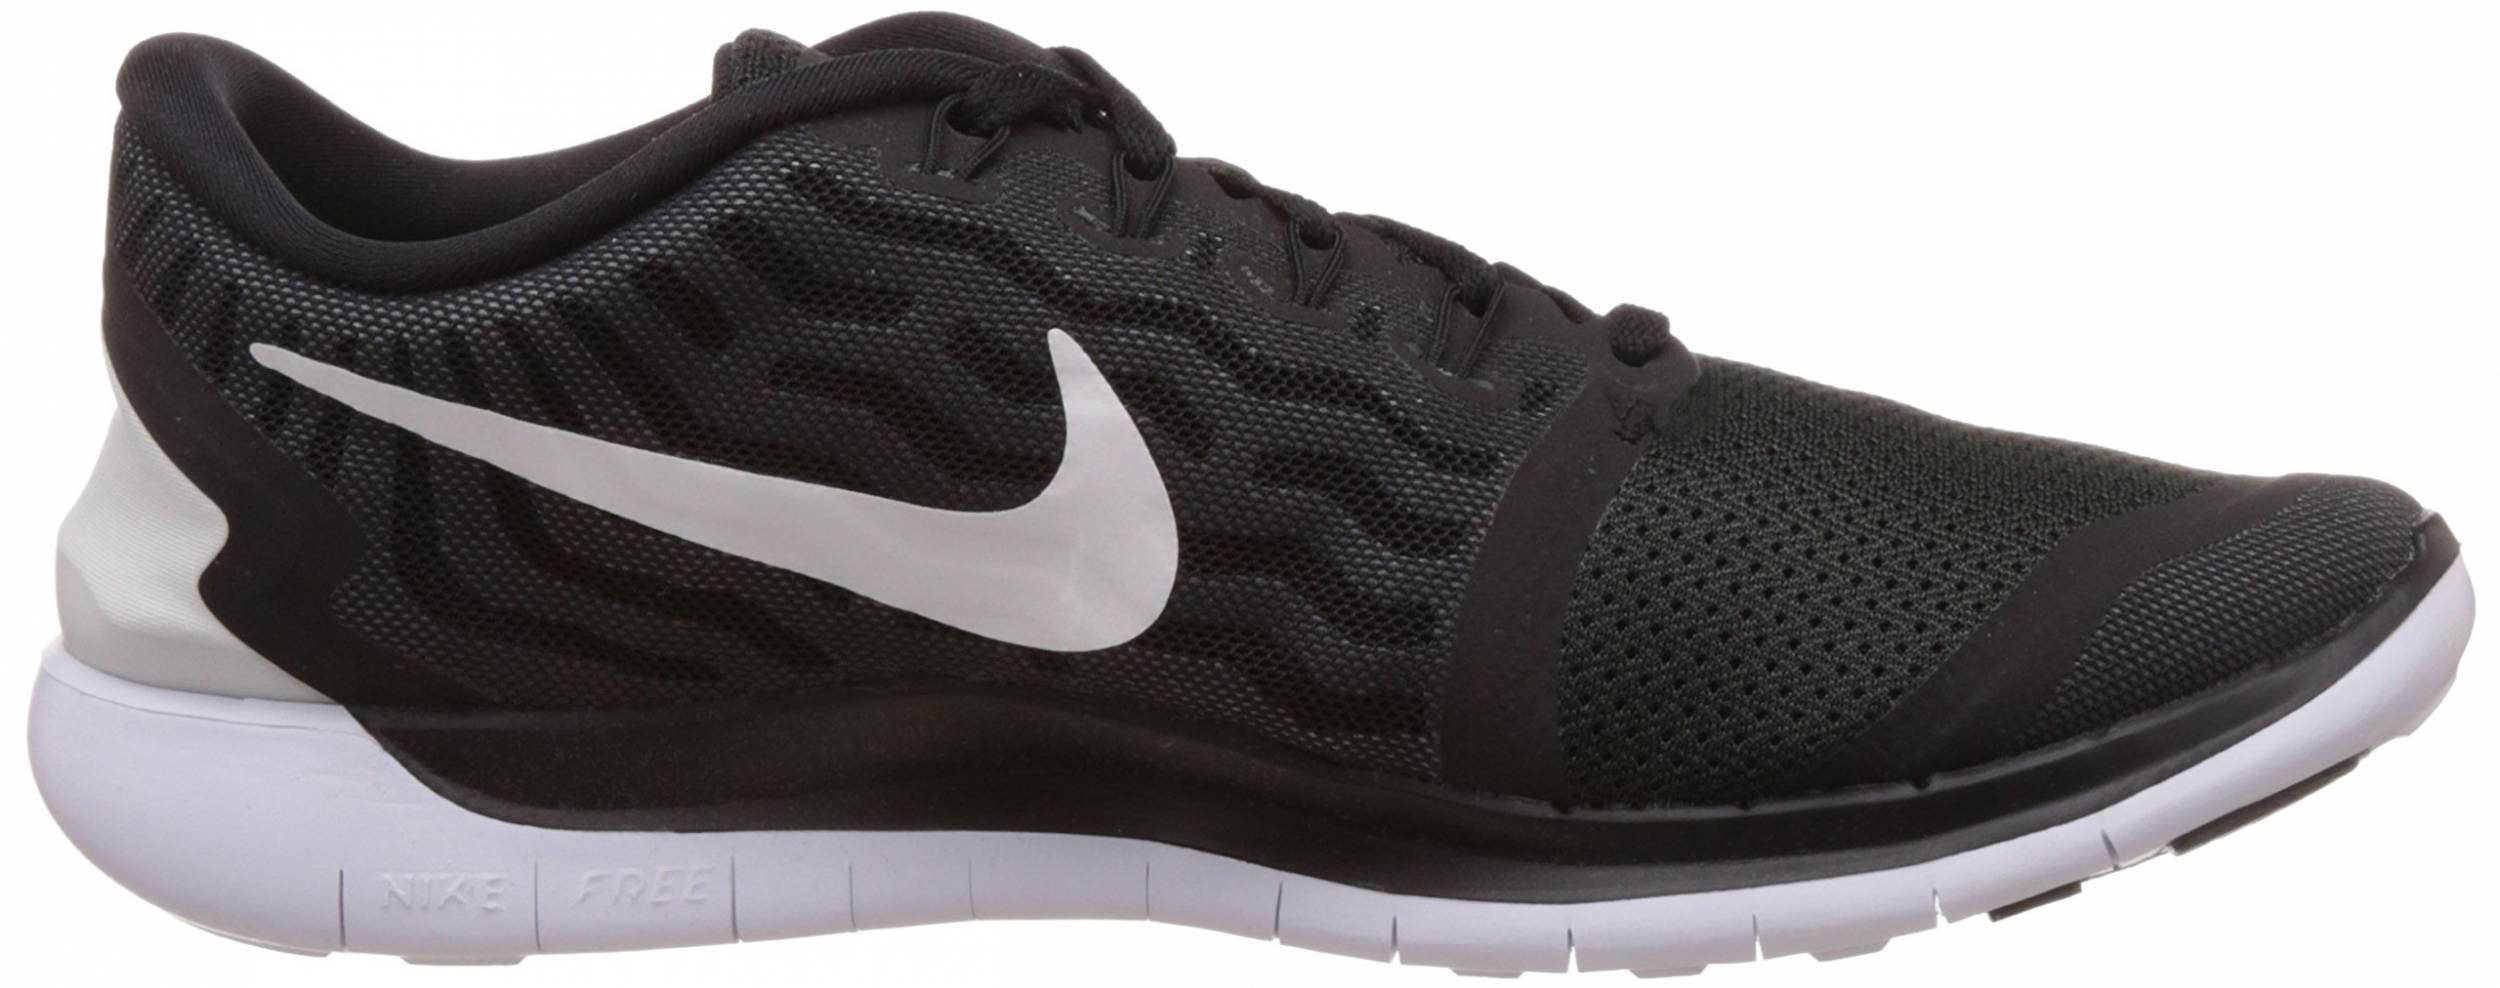 Compositor Igualmente Mayordomo  $130 + Review of Nike Free 5.0 | RunRepeat